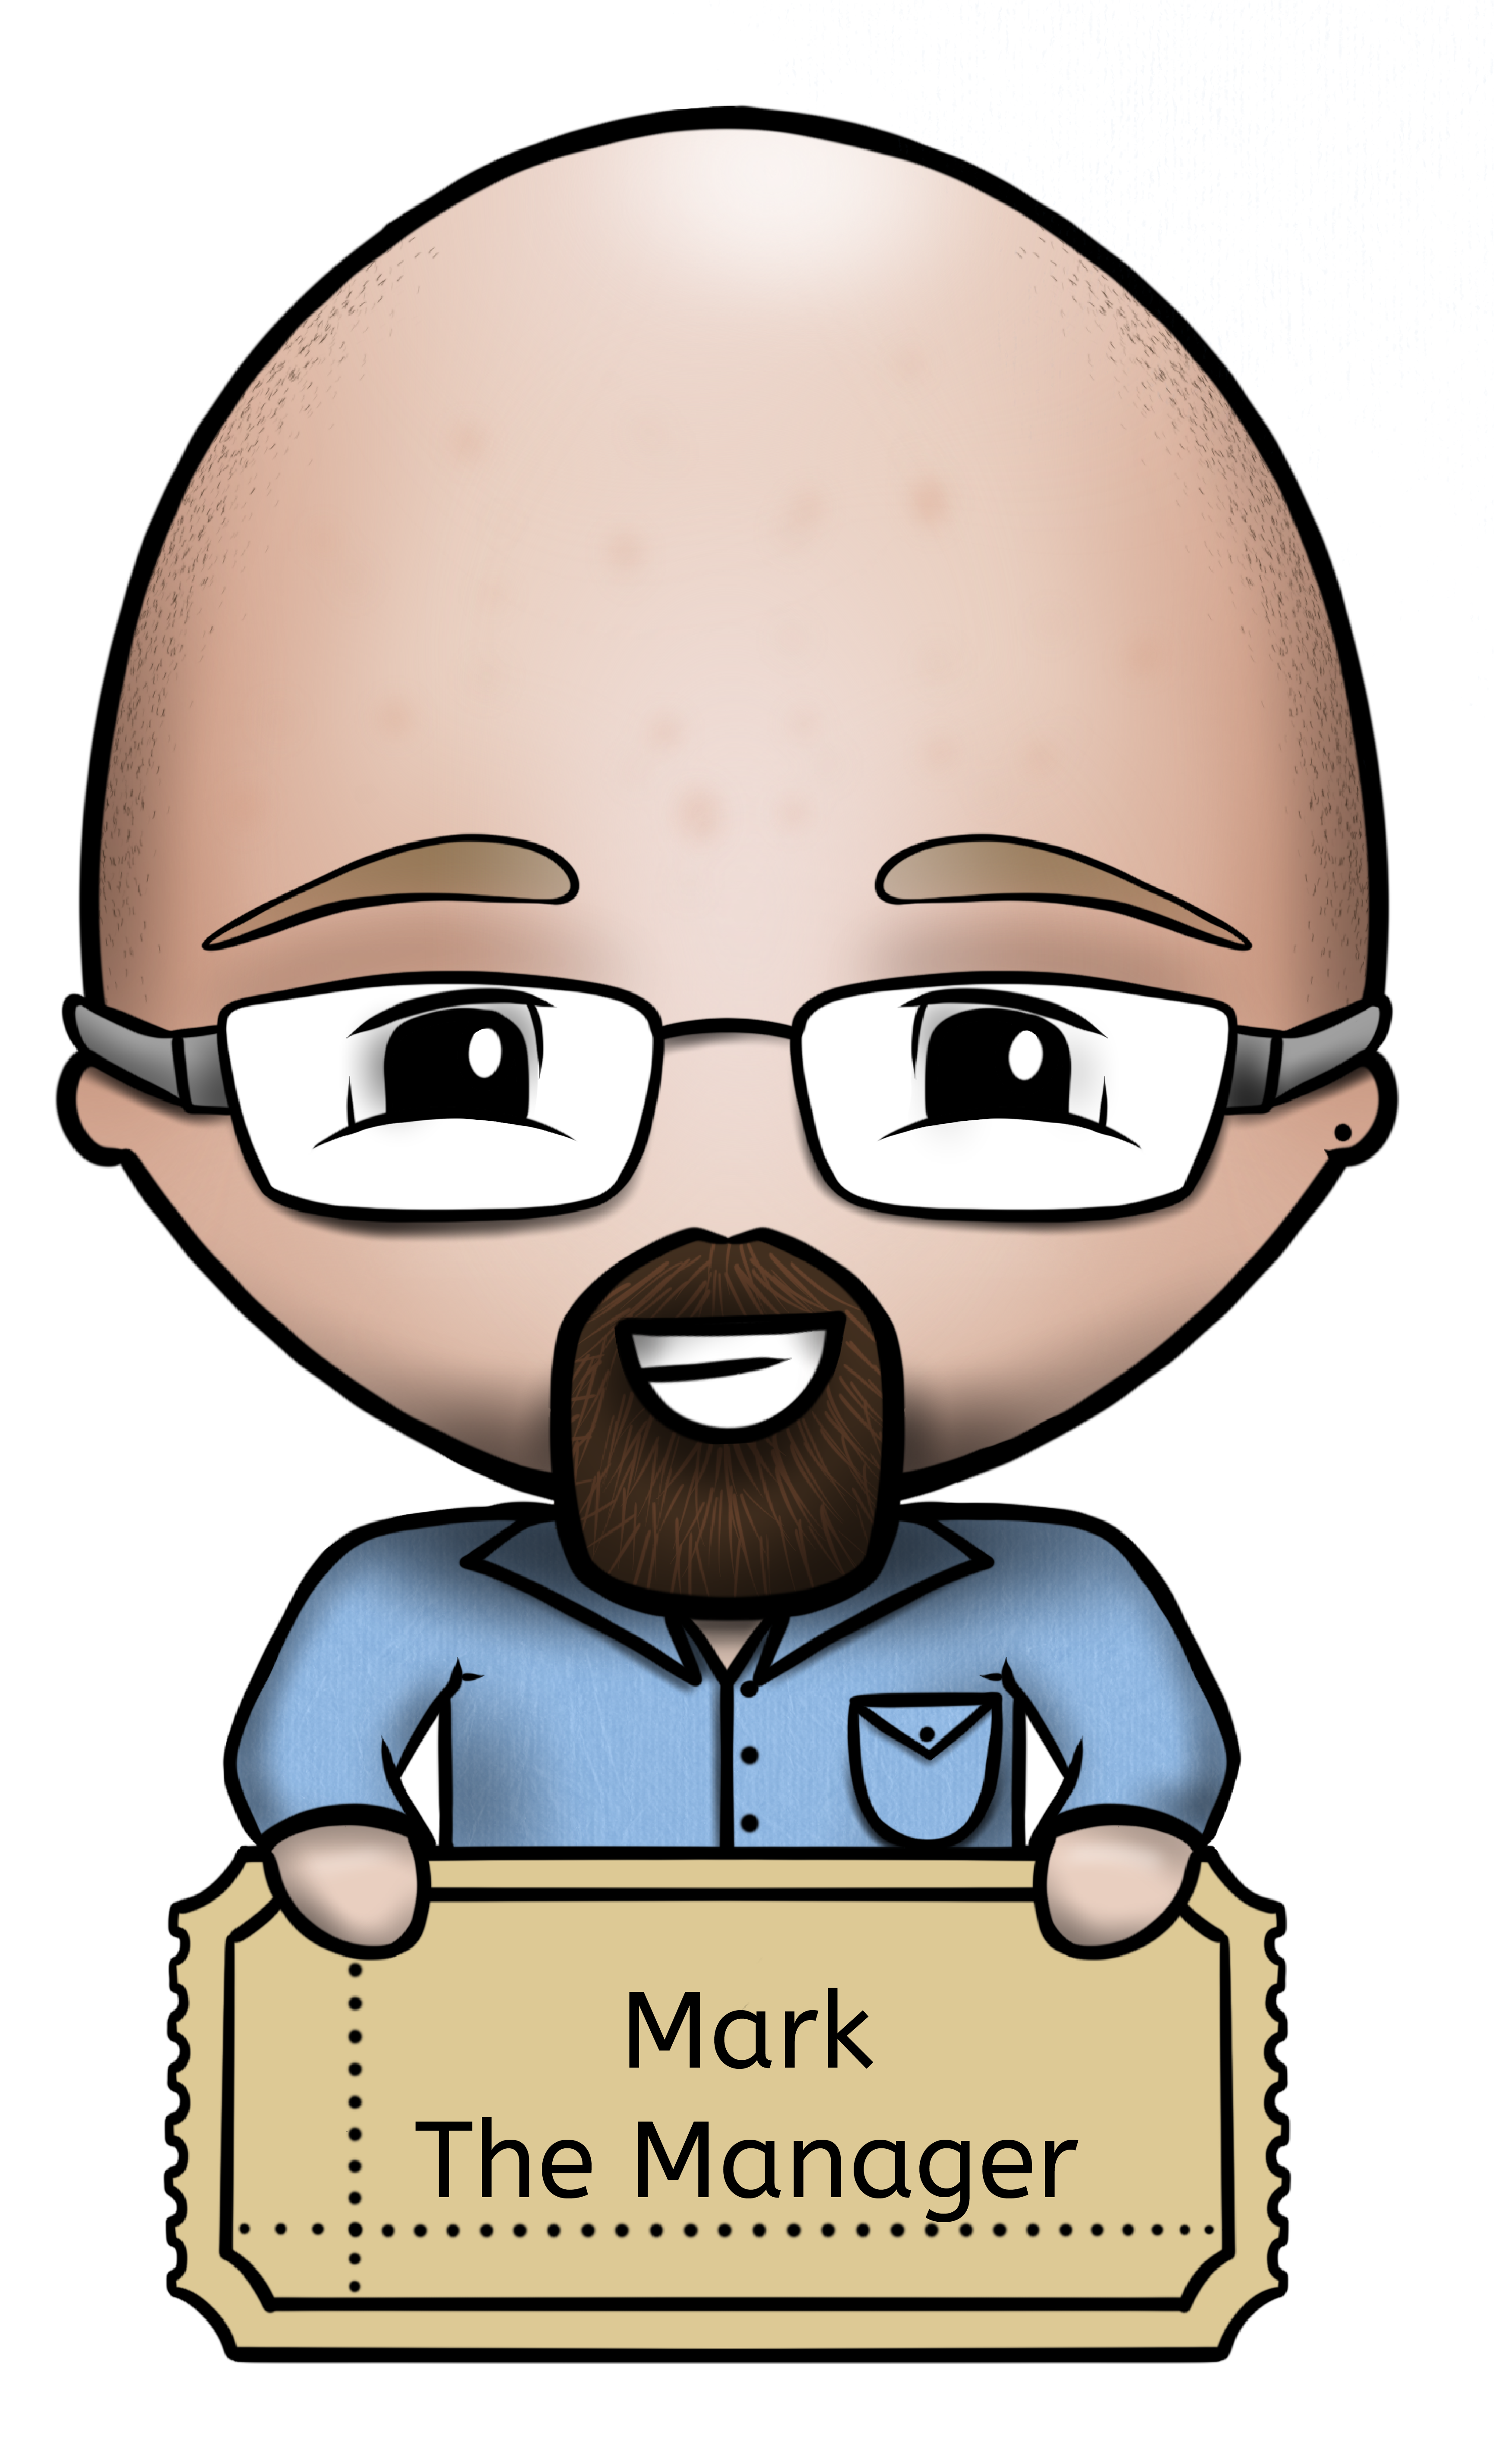 Chibi Me - Mark